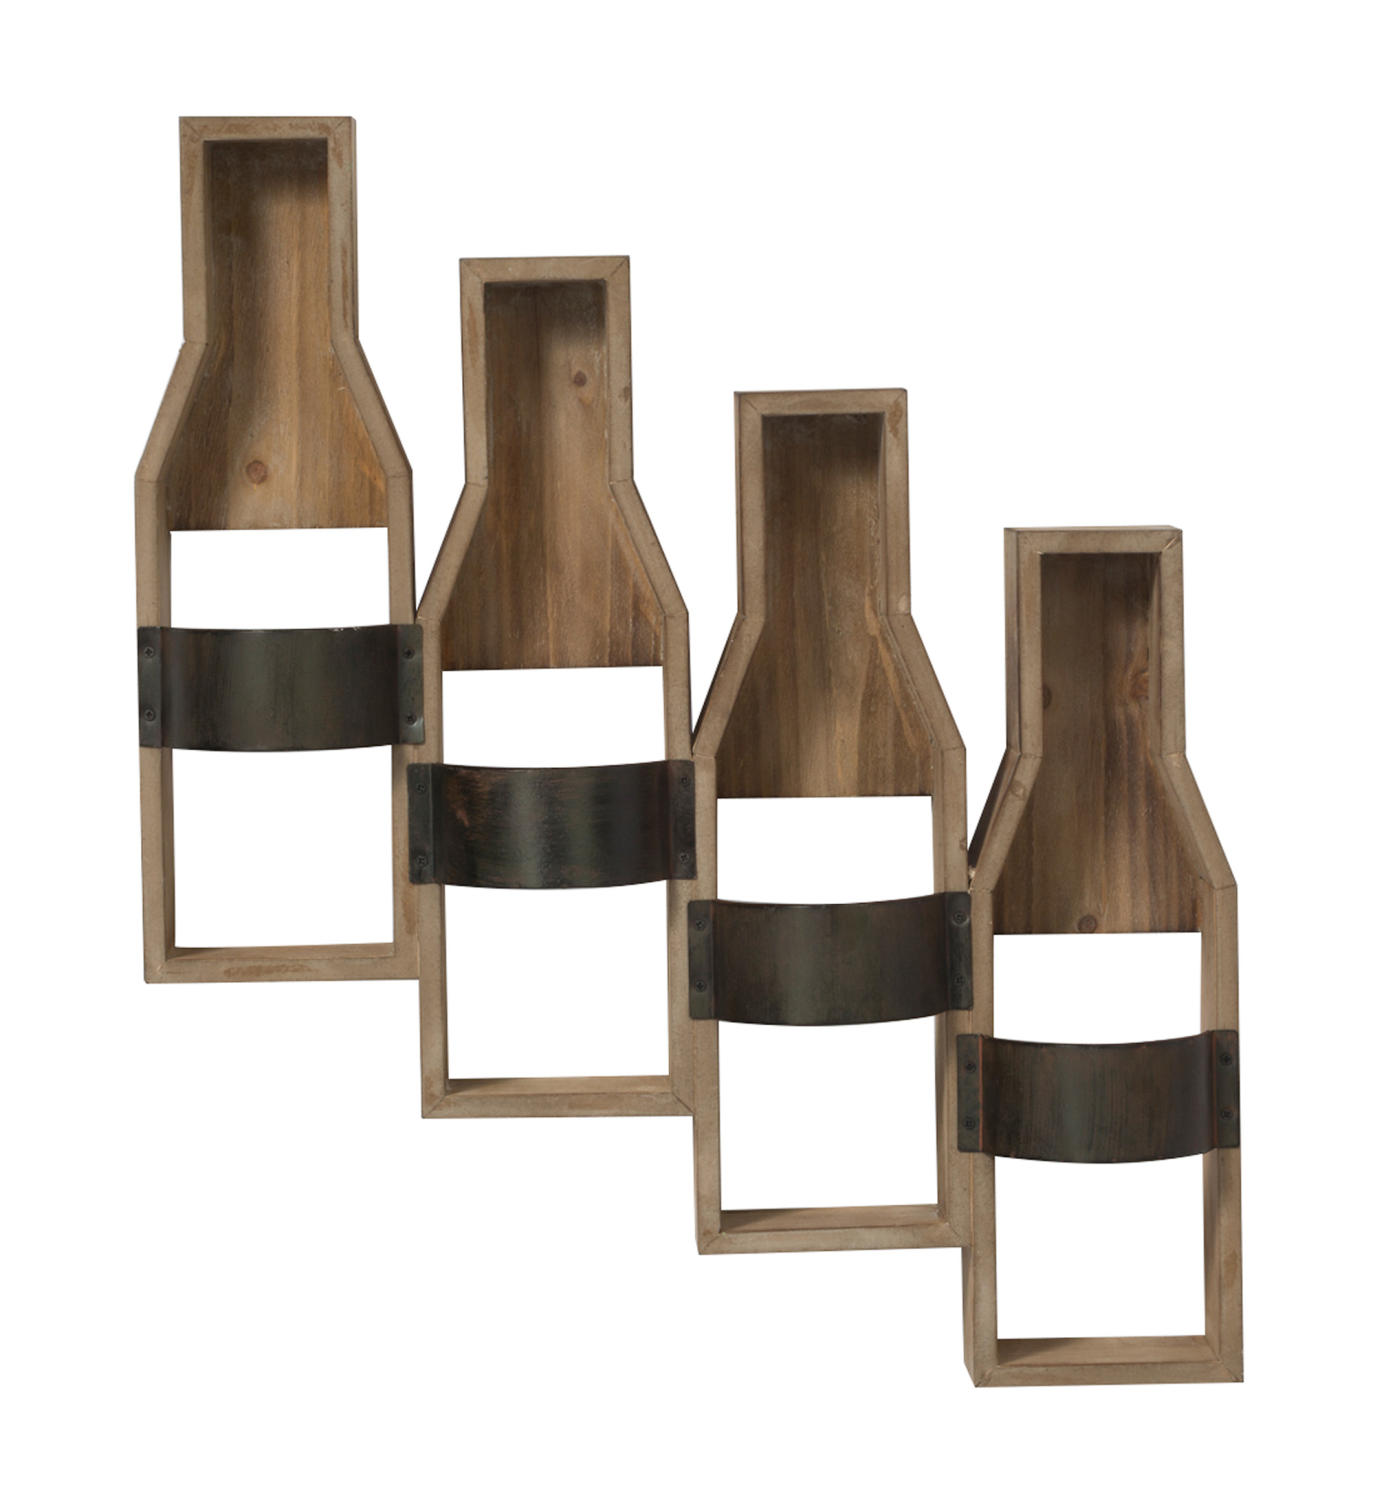 4-Place Wood and Metal Band Bottle Holder (Wall Decor)